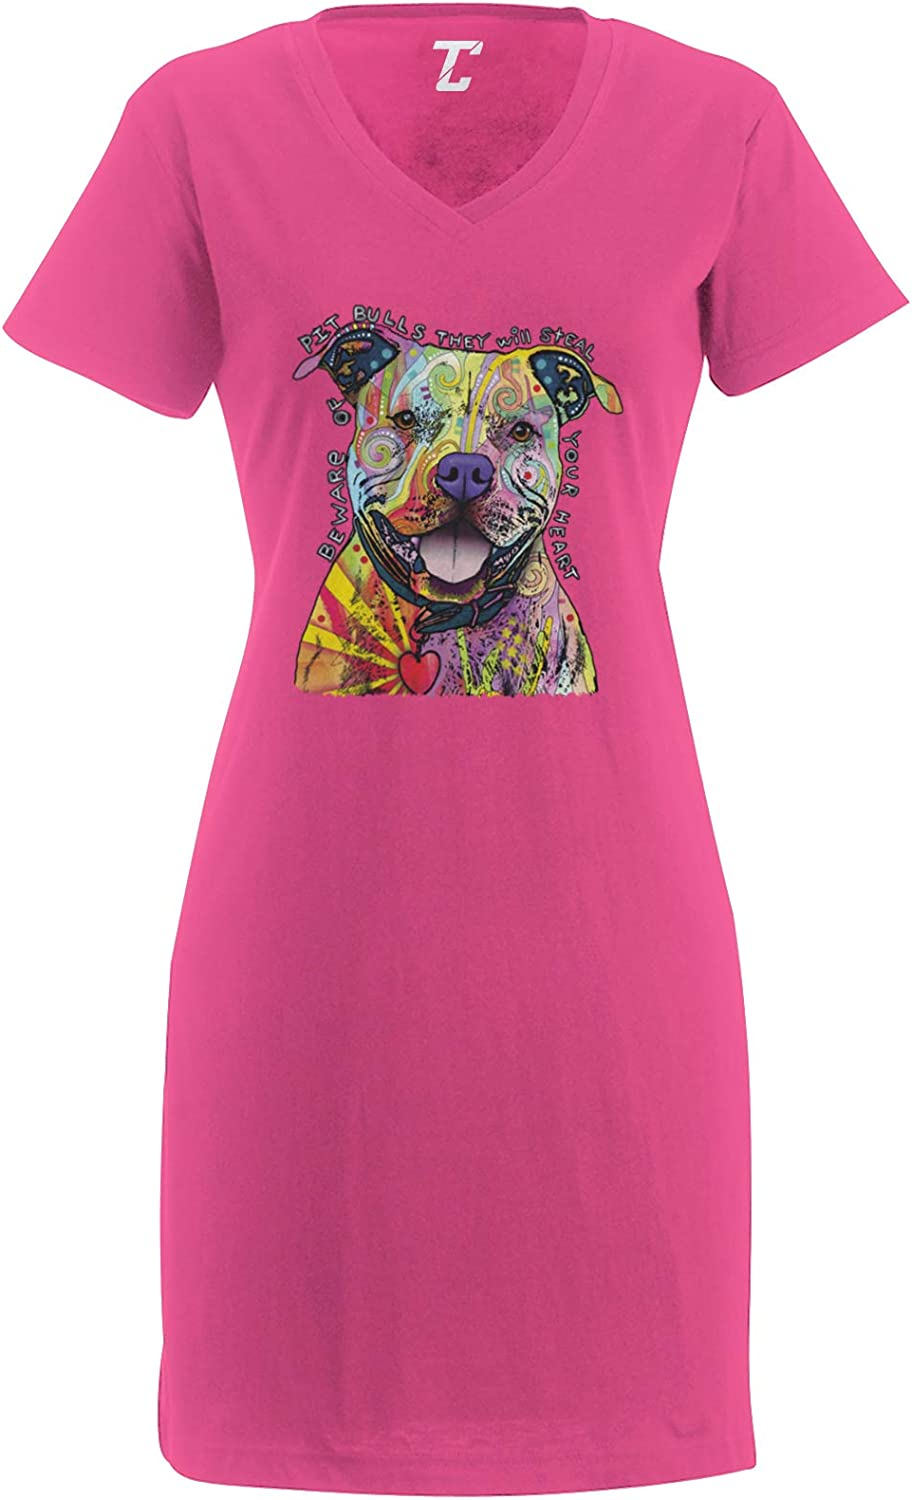 Tcombo Beware of Pitbulls They Will Steal Your Heart Womens Nightshirt